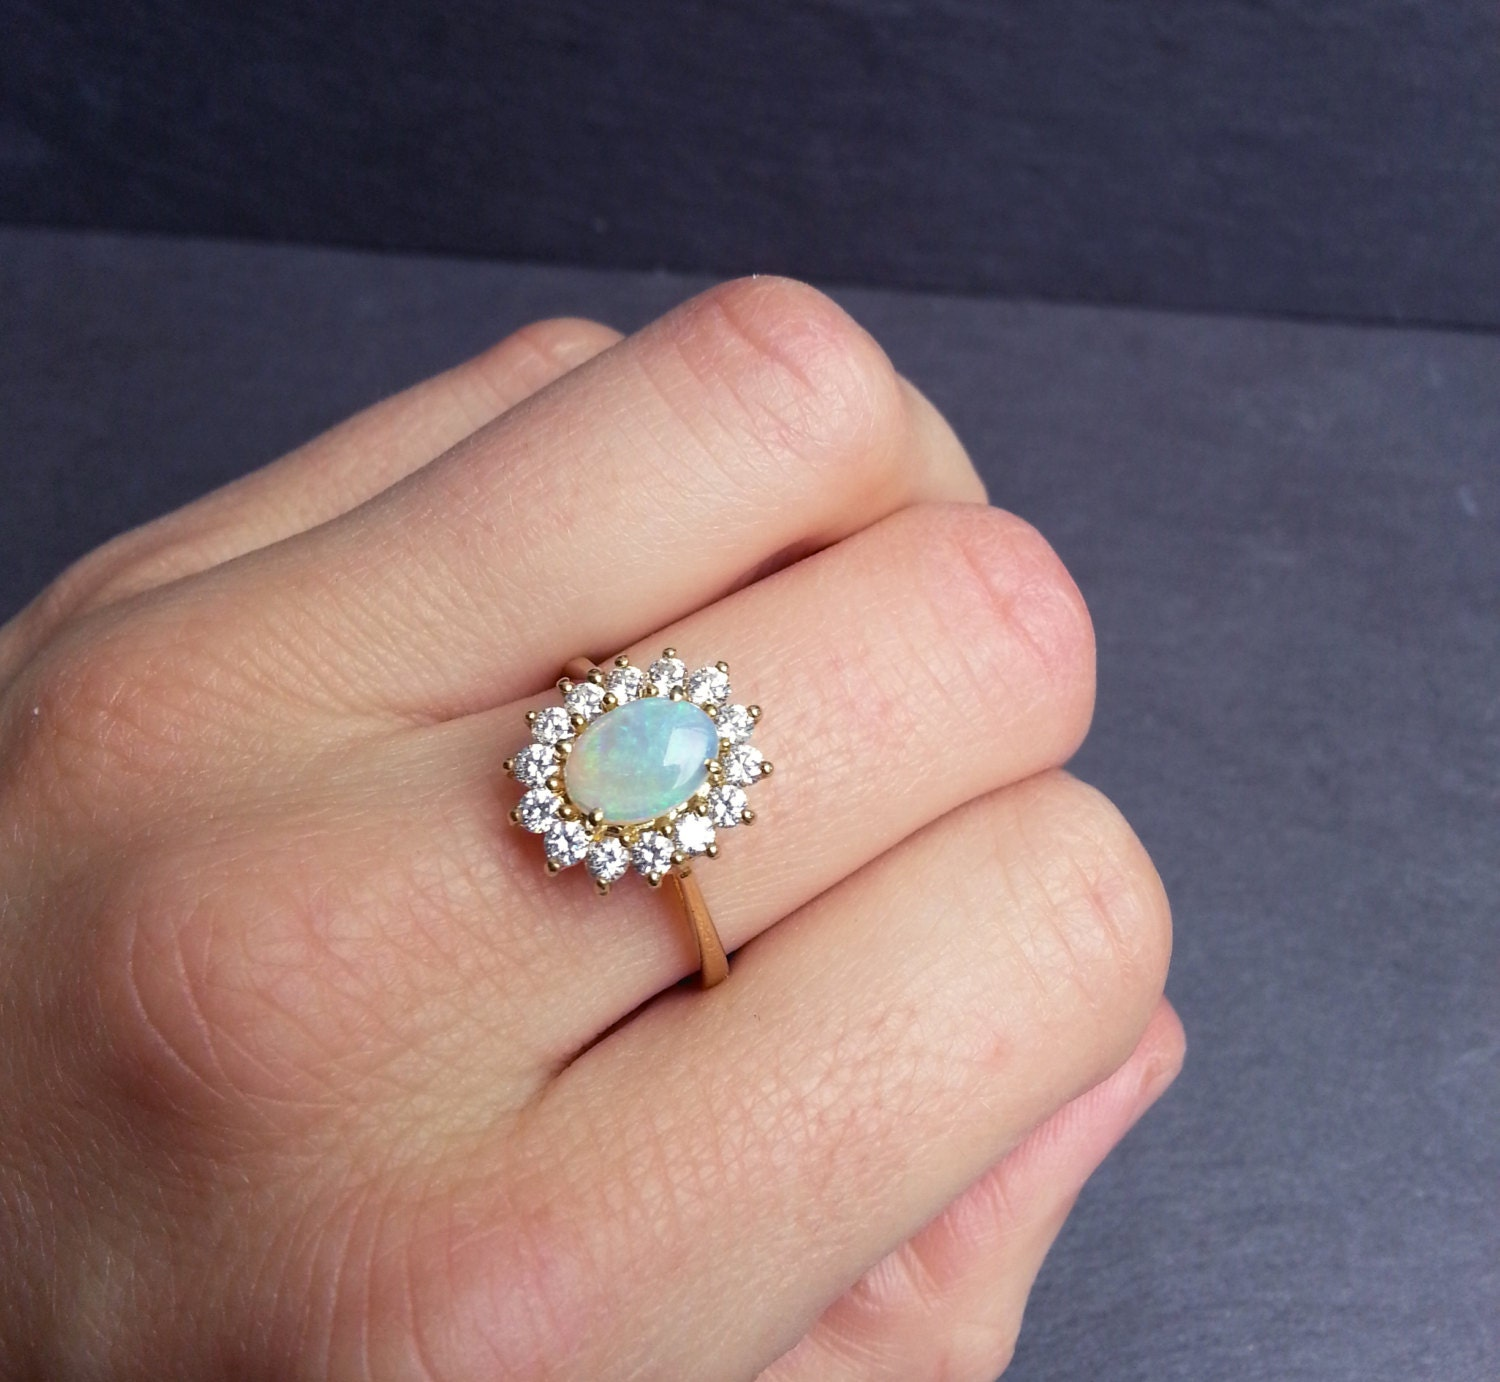 Gold Opal Engagement Ring Diamond And Opal Ring By ArahJames